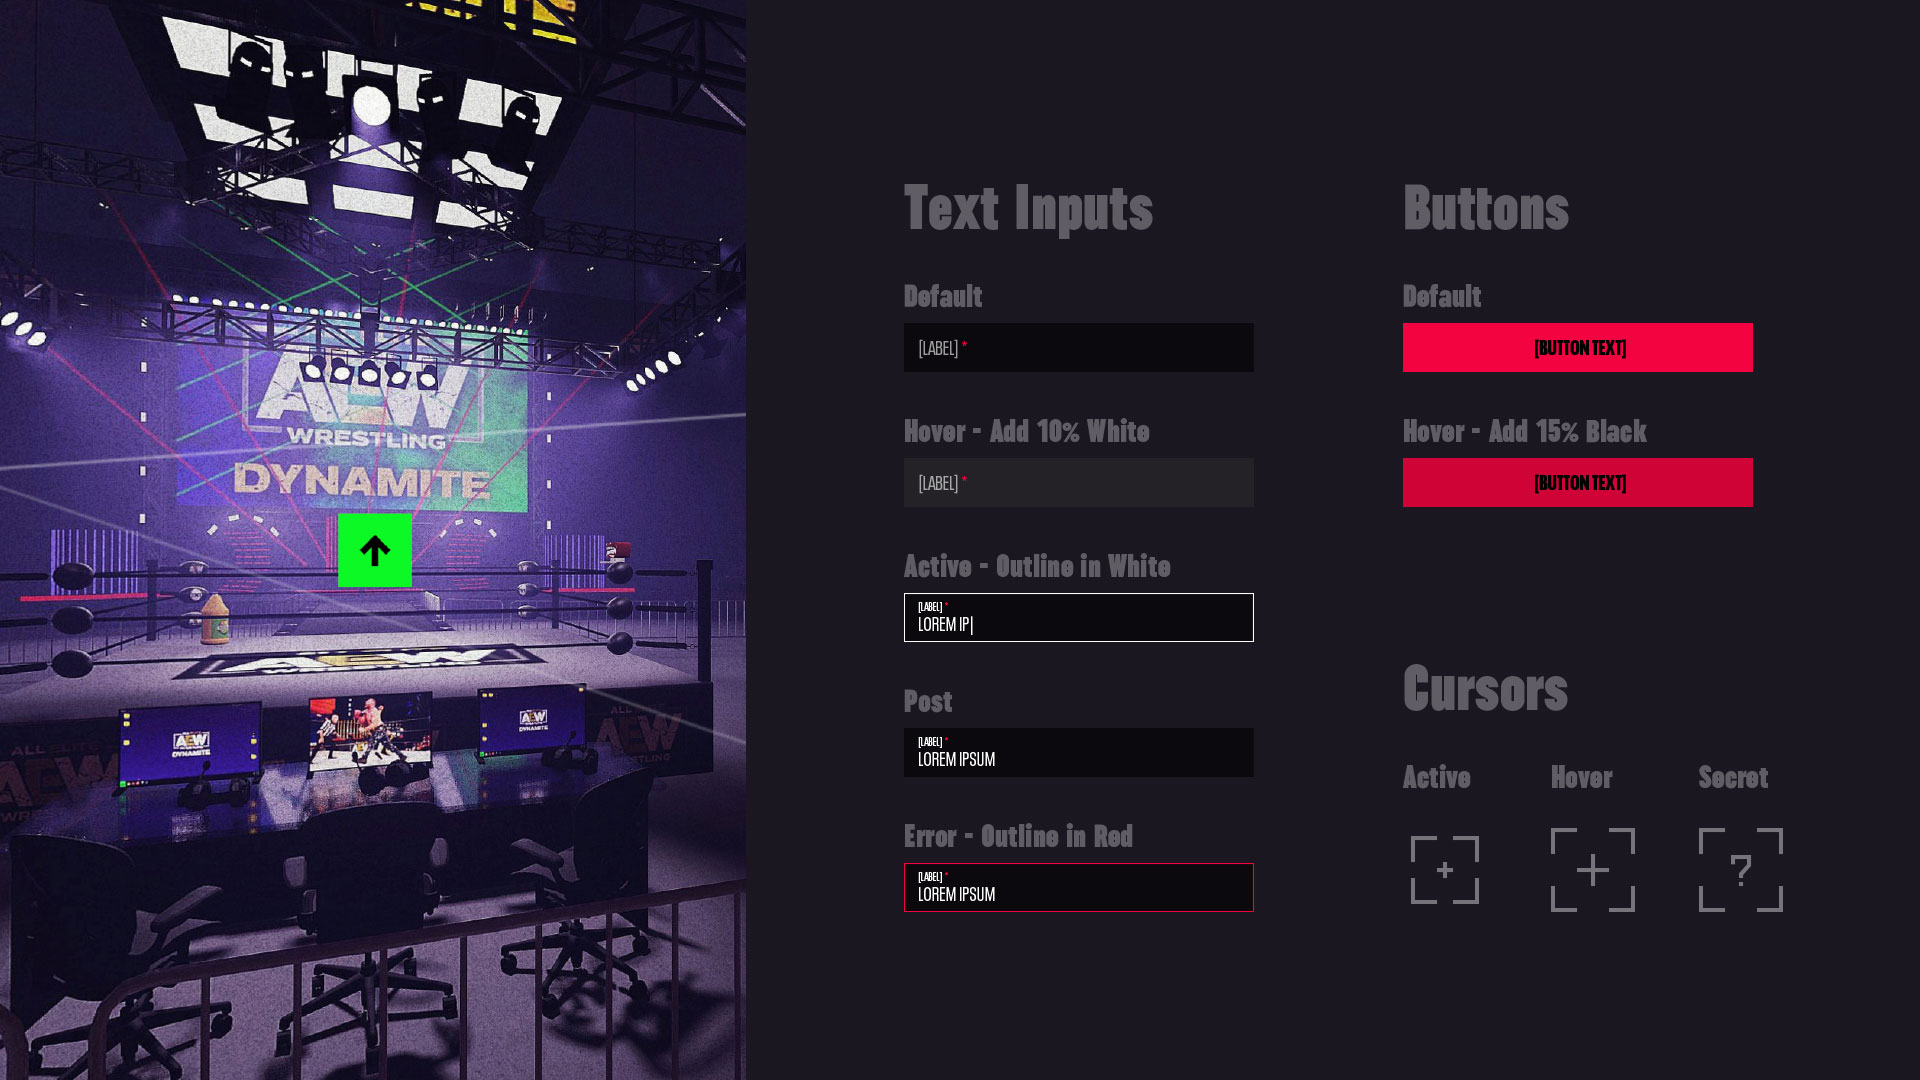 A style sheet showing all of the basic user interface assets for the AEW experience including 3D renderings, text fields, buttons and cursor styles.